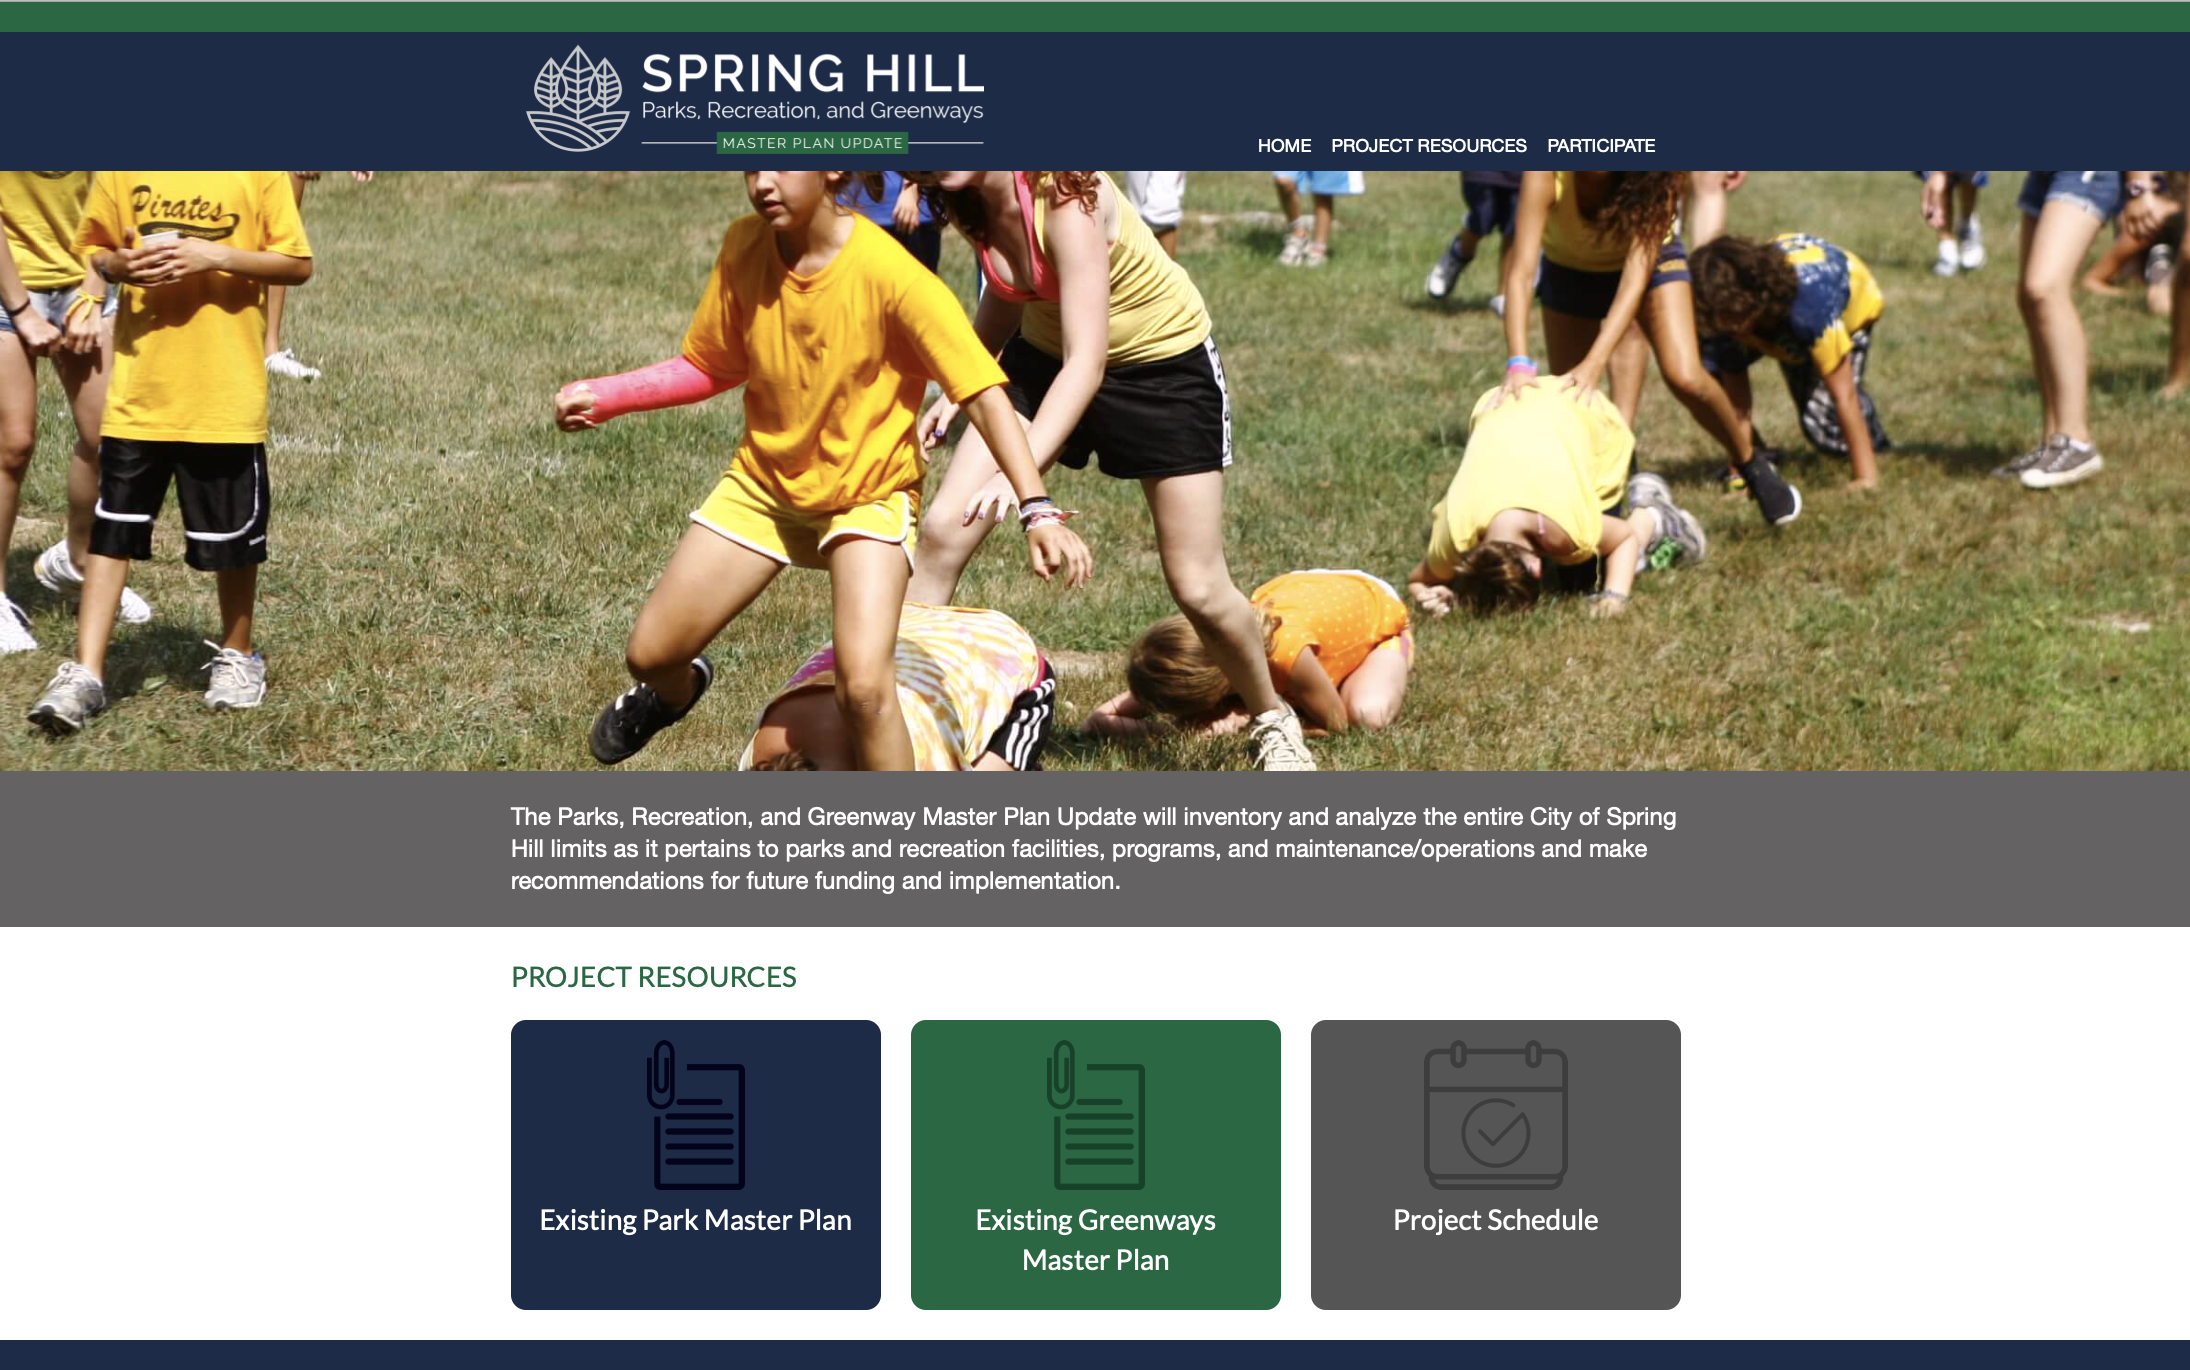 Please take this short survey and tell us what you think of Spring Hill's parks and recreation fa